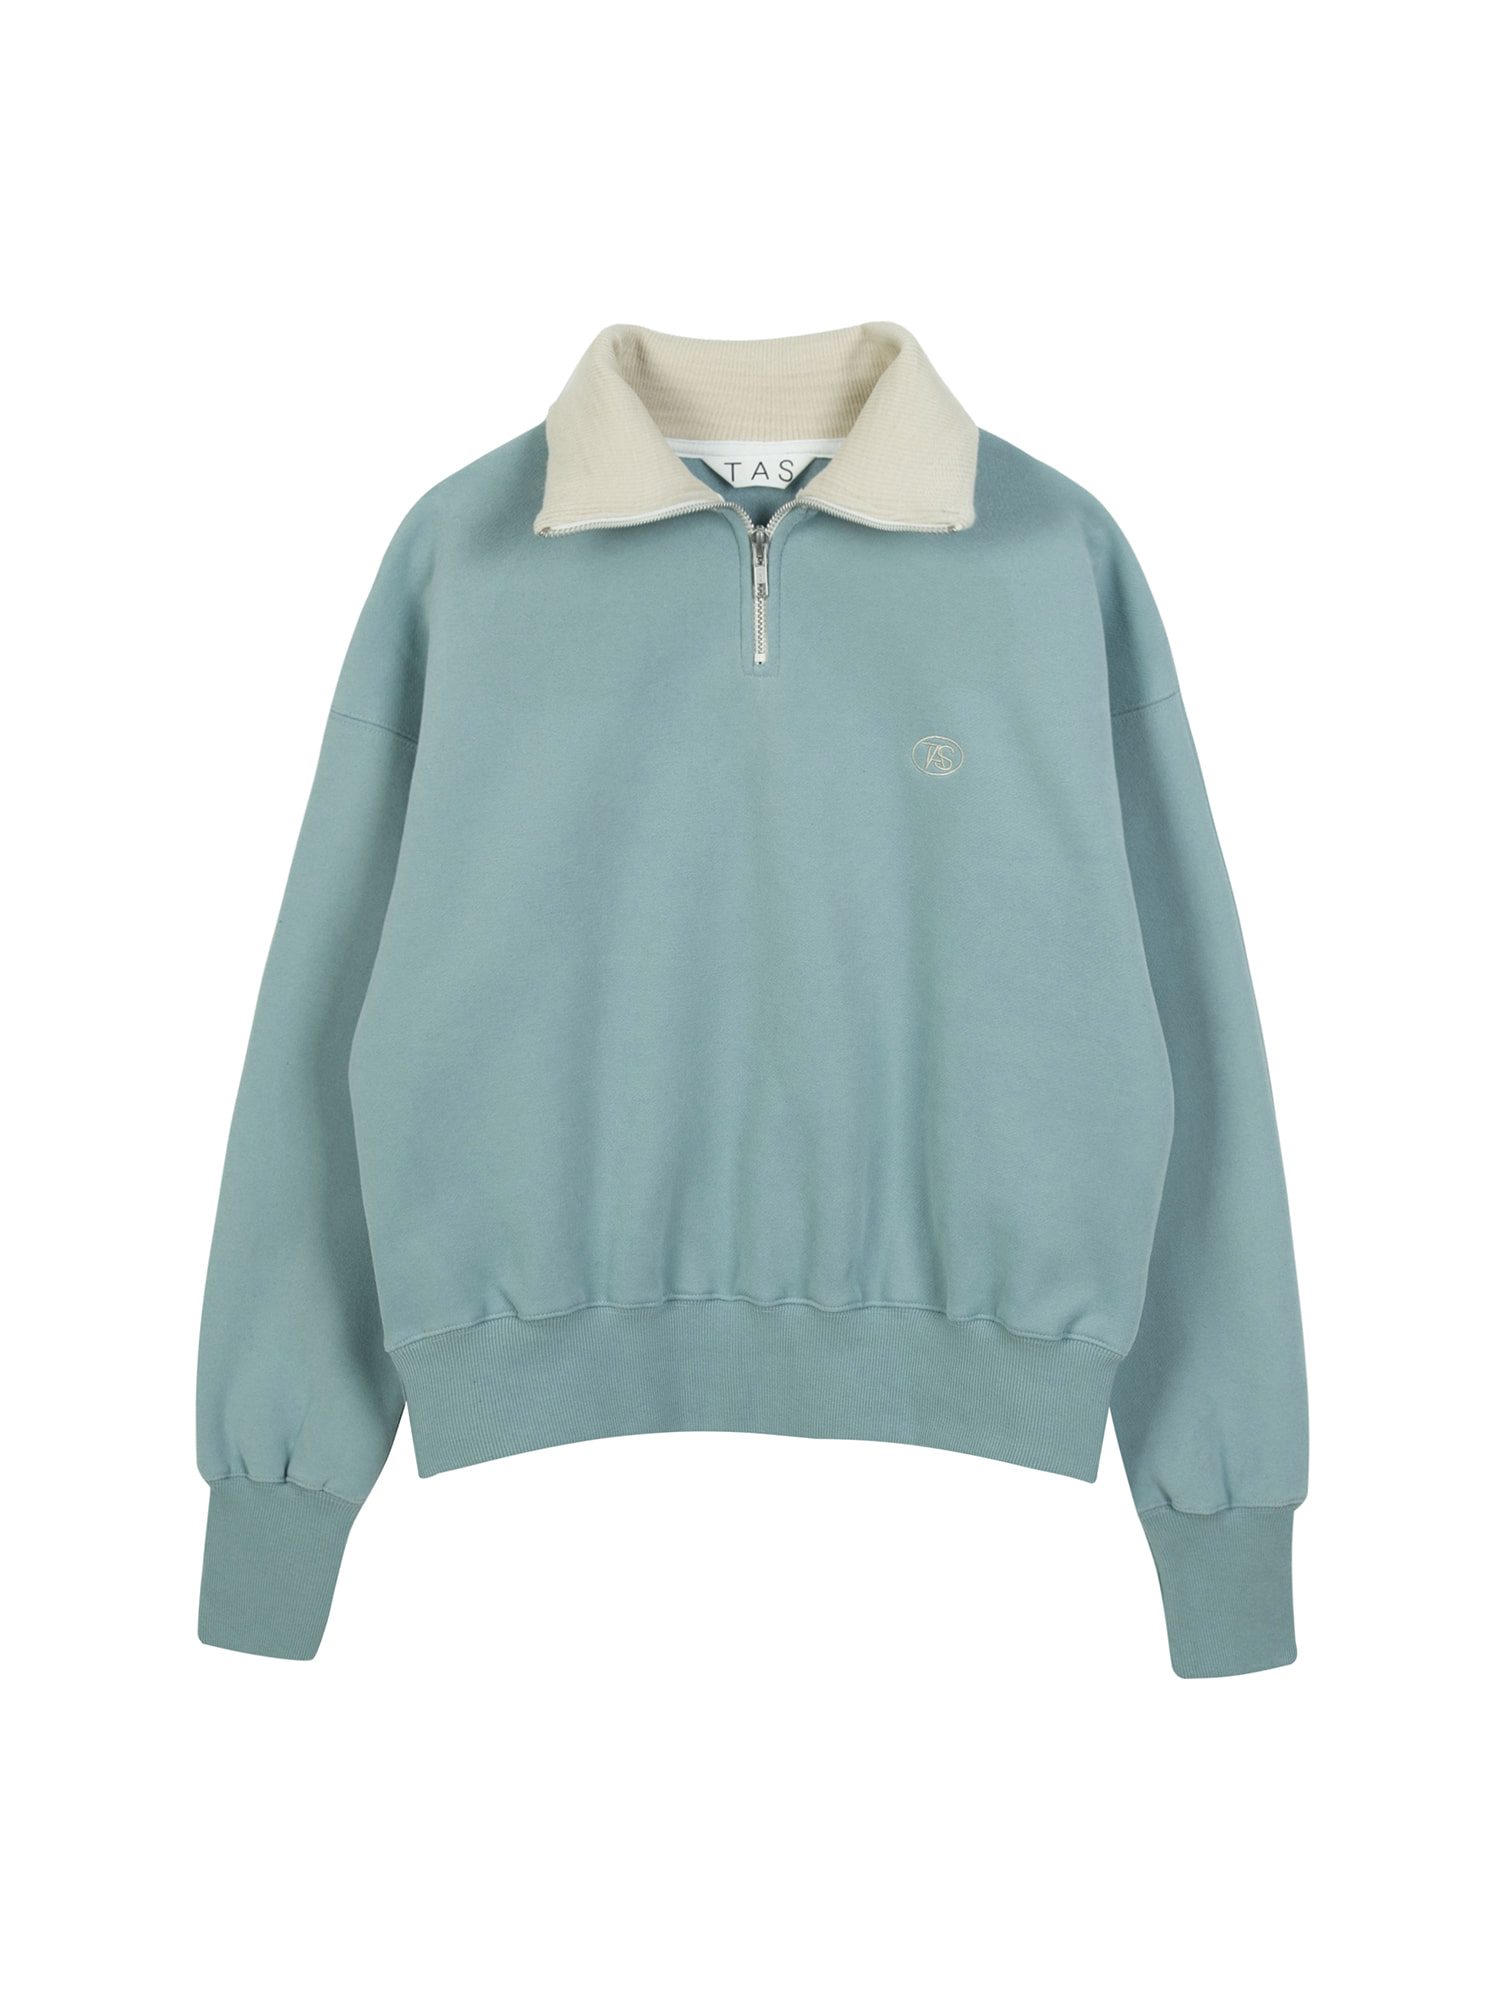 tas zip up sweat shirt (Mint)